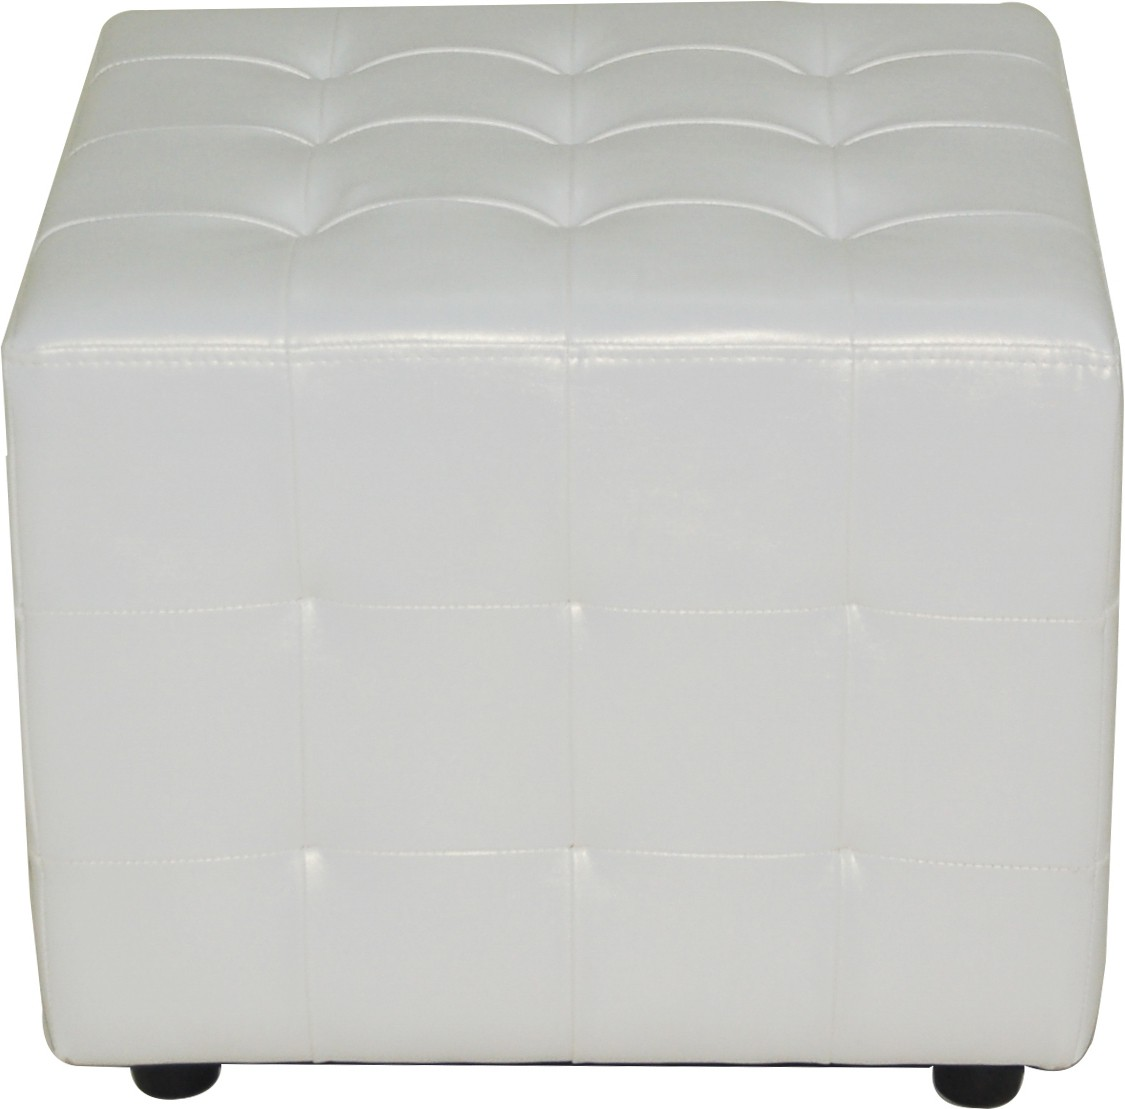 View Furnitech Engineered Wood Standard Ottoman(Finish Color - White) Furniture (Furnitech)